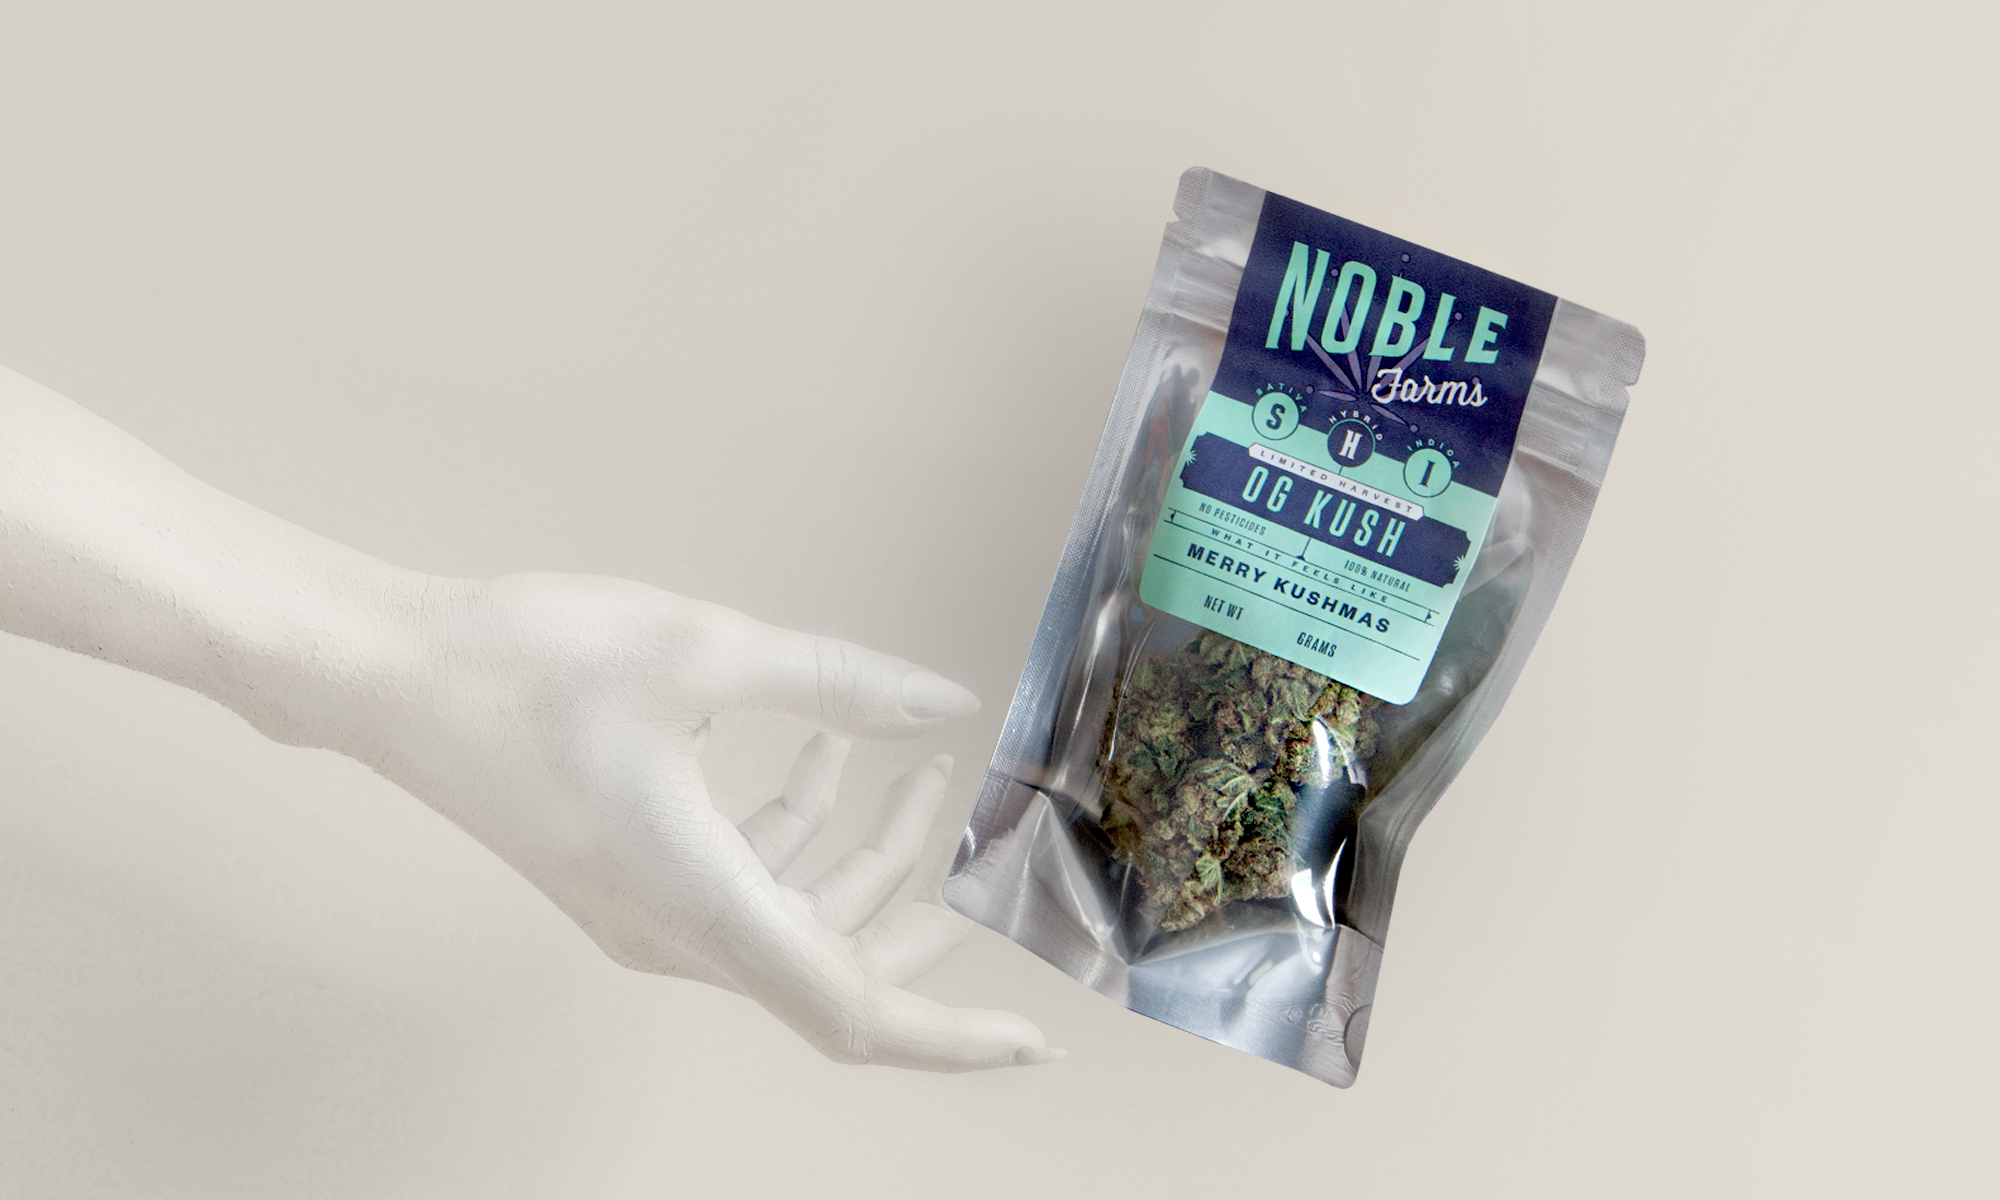 White-painted hand reaching for Noble Farms cannabis flower bag packaging on white background.